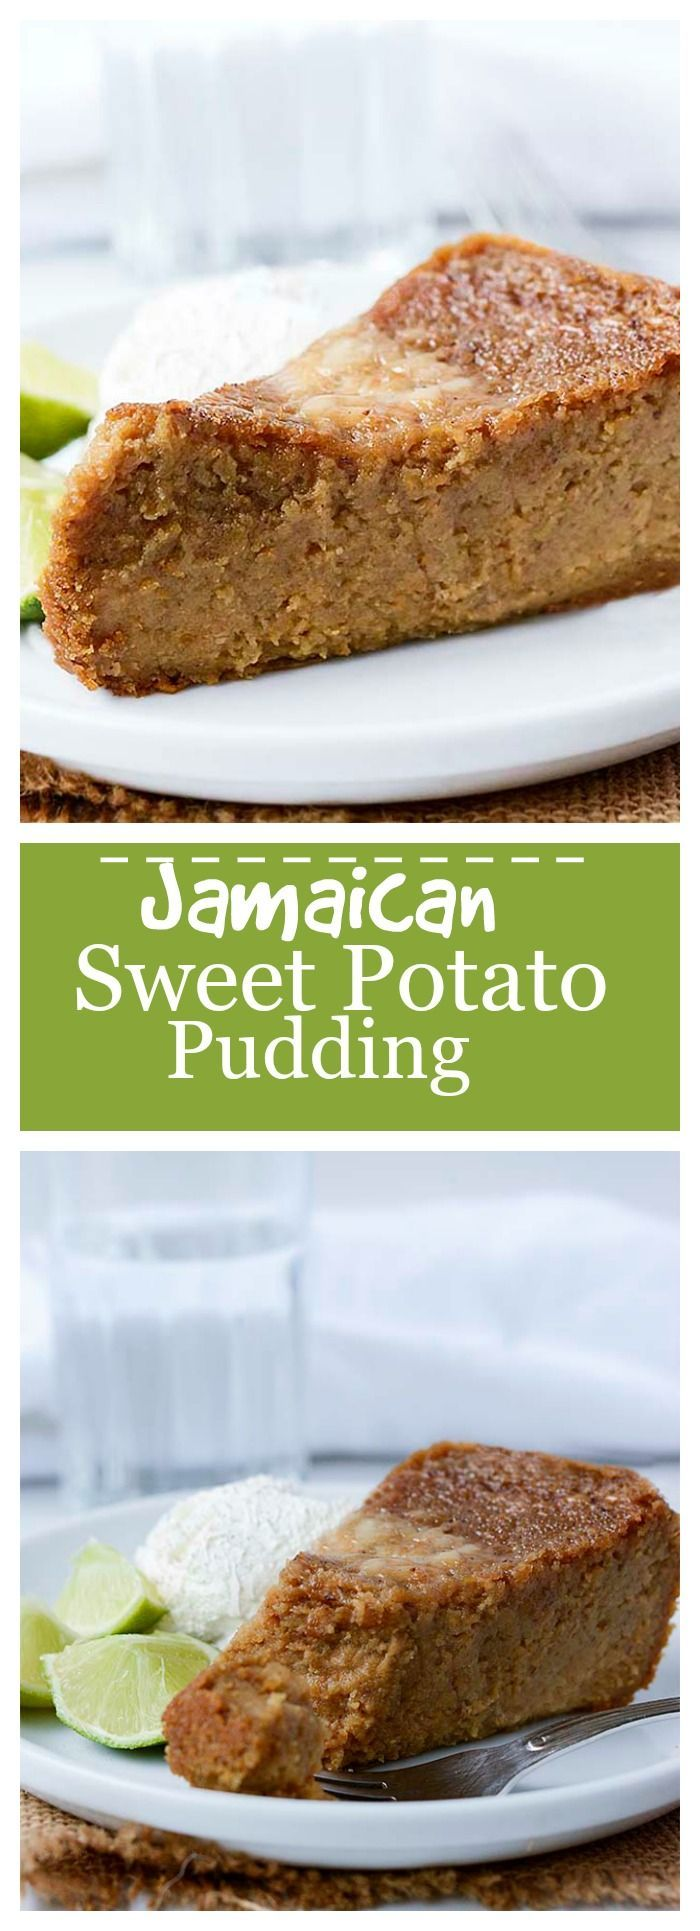 Jamaican Sweet  Potato Pudding for low carb try this with low carb Baking mix